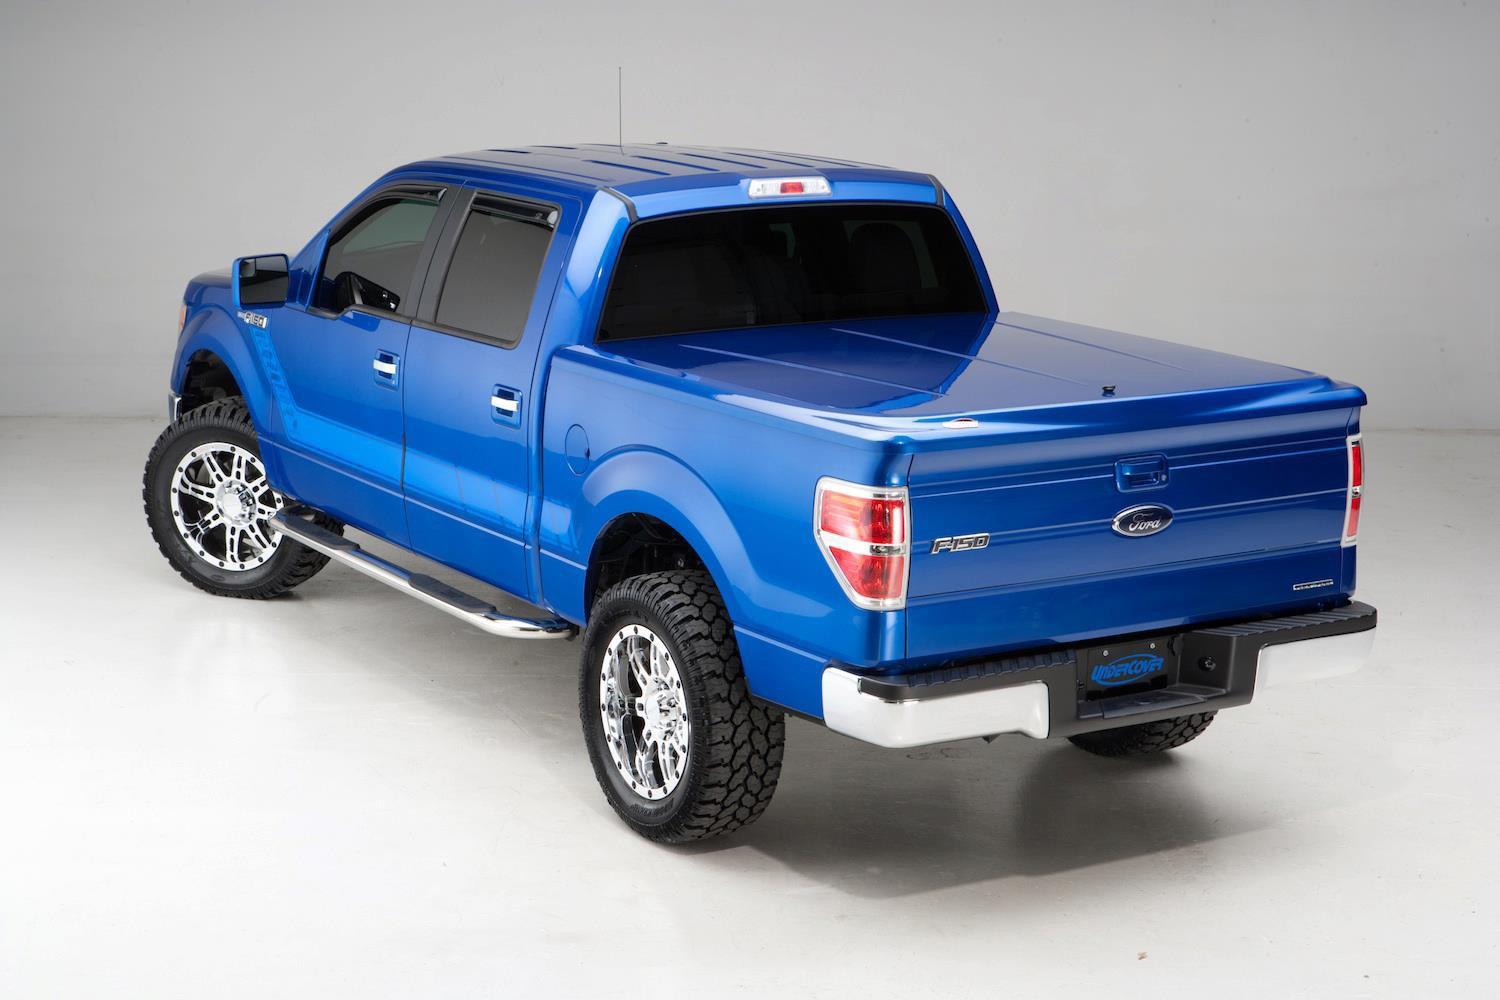 Ford F150 Hard Bed Cover >> Undercover - Gallery